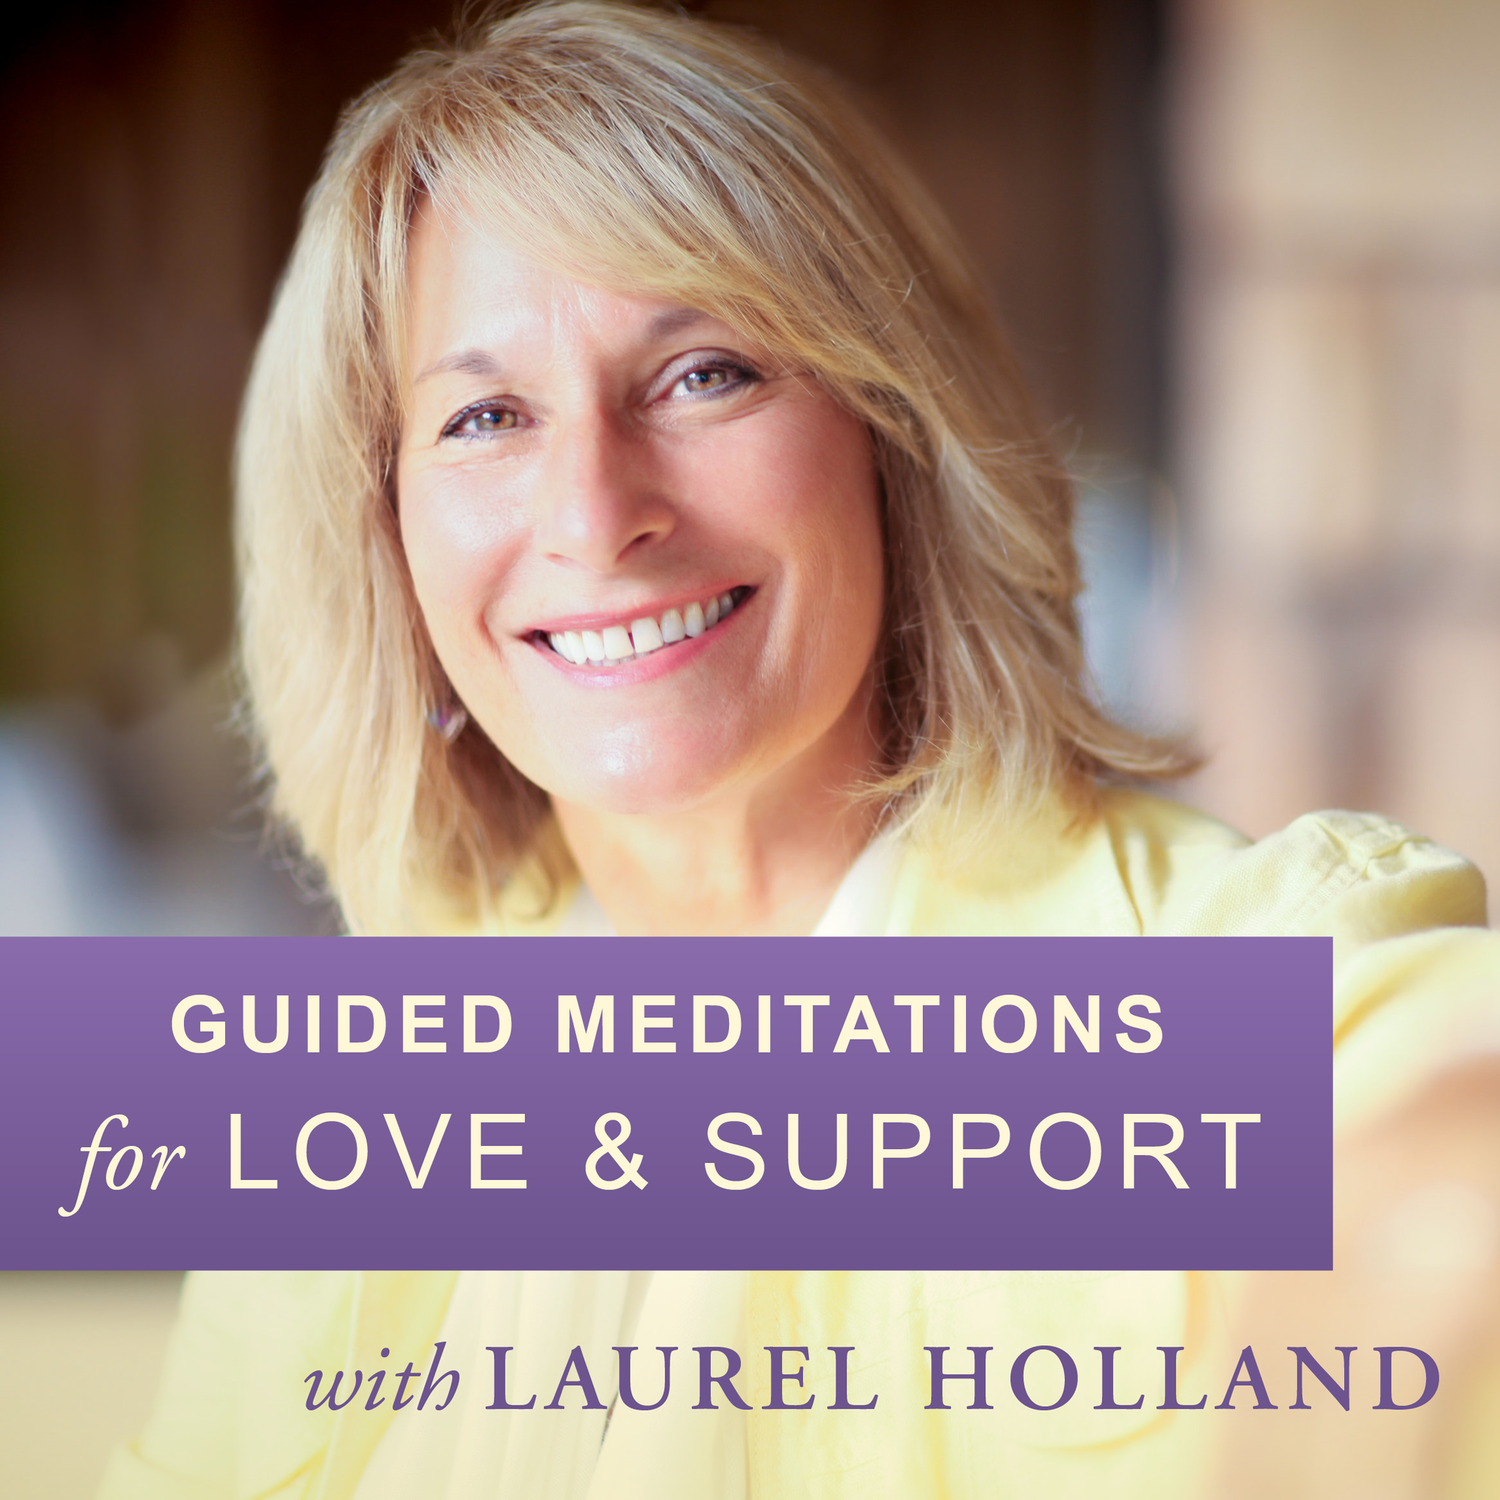 Guided Meditations for Love & Support - Laurel Holland